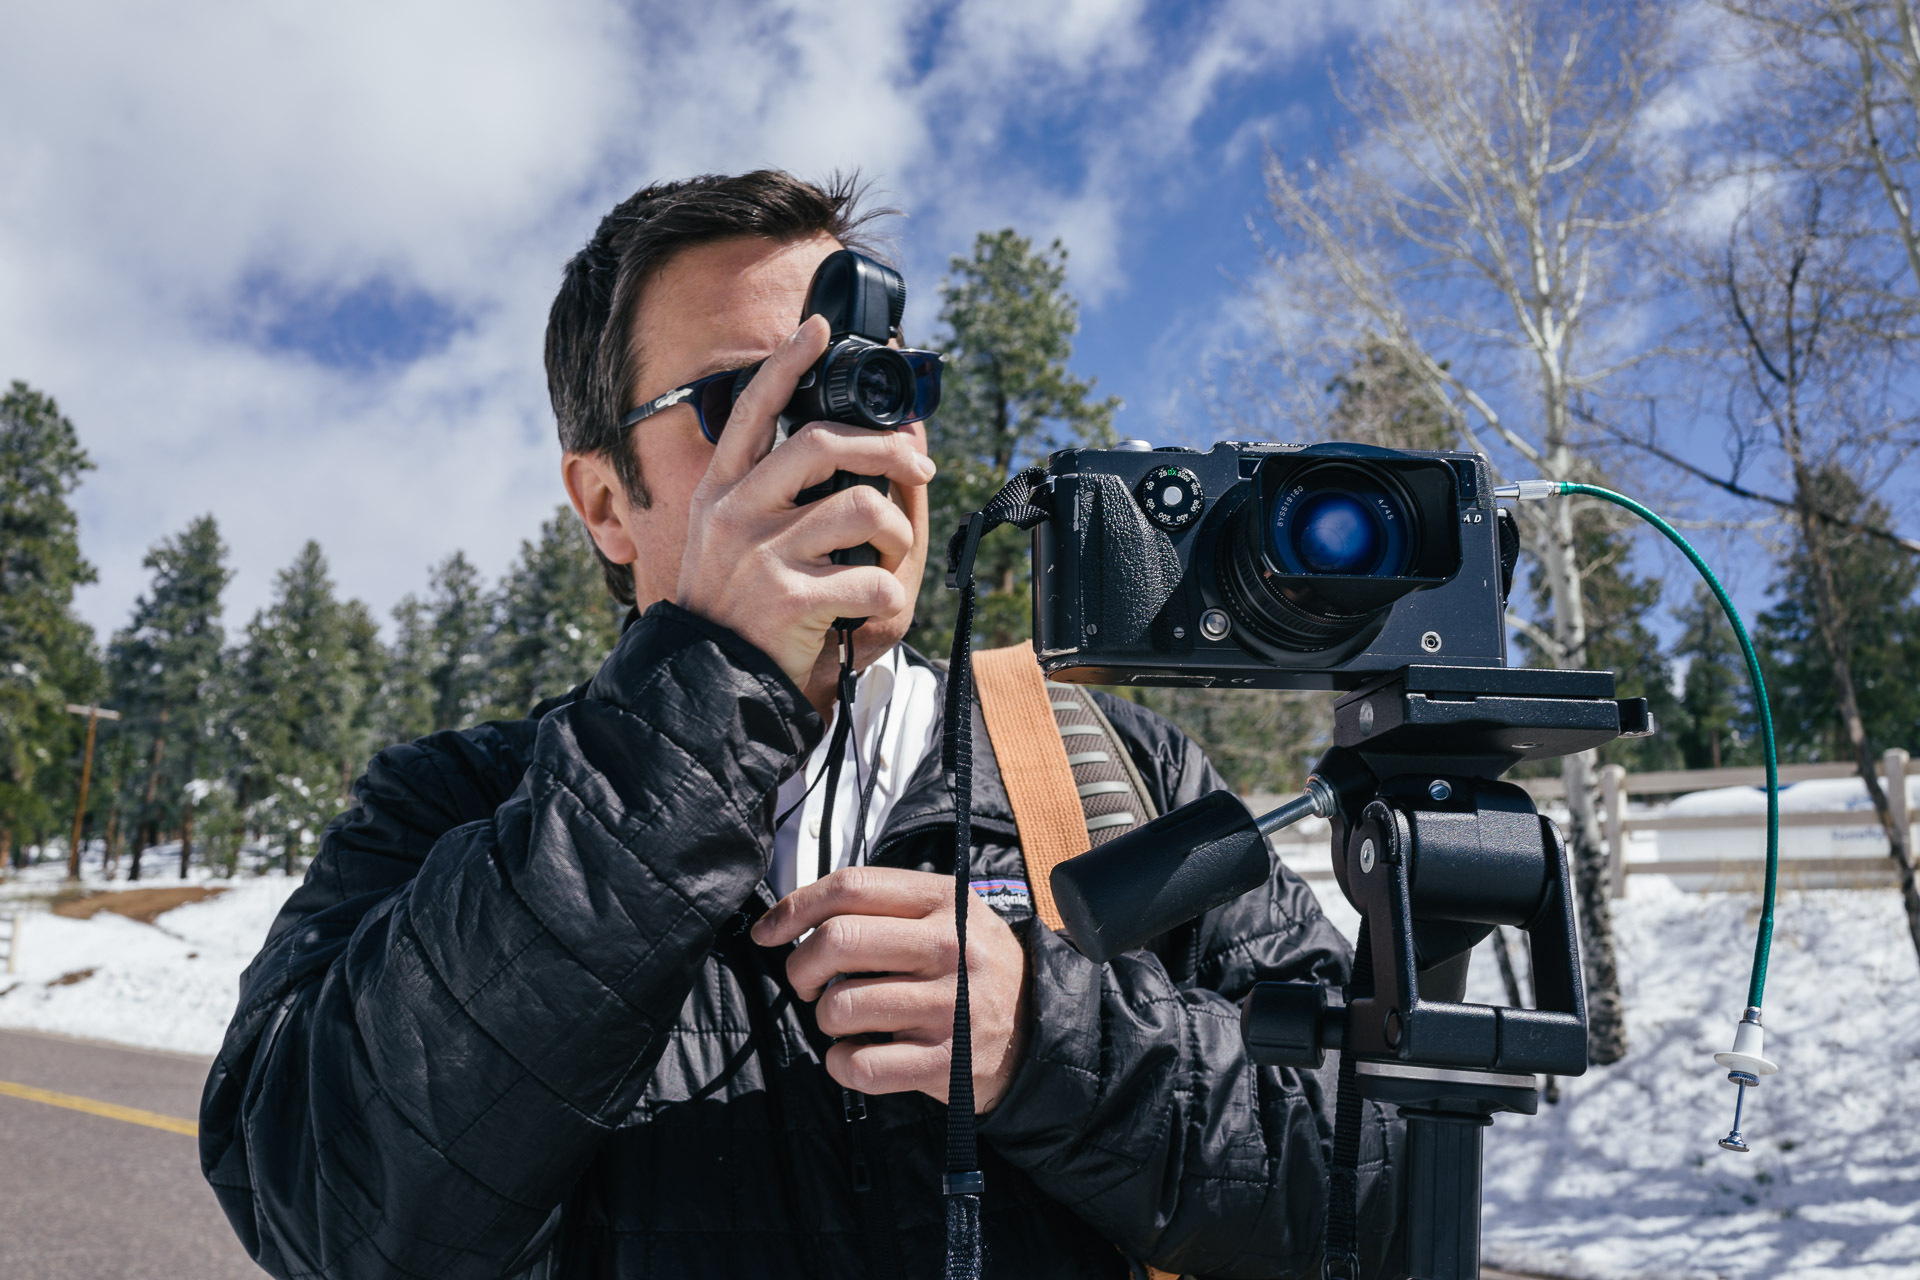 Joseph Gamble metering the scene before making a panoramic image with the Hasselblad Xpan film camera. Here he usedthe Zone System to meter for the snow and then opened the aperture2.5 stops to achieve the exposure he wanted. May 11, 2015.